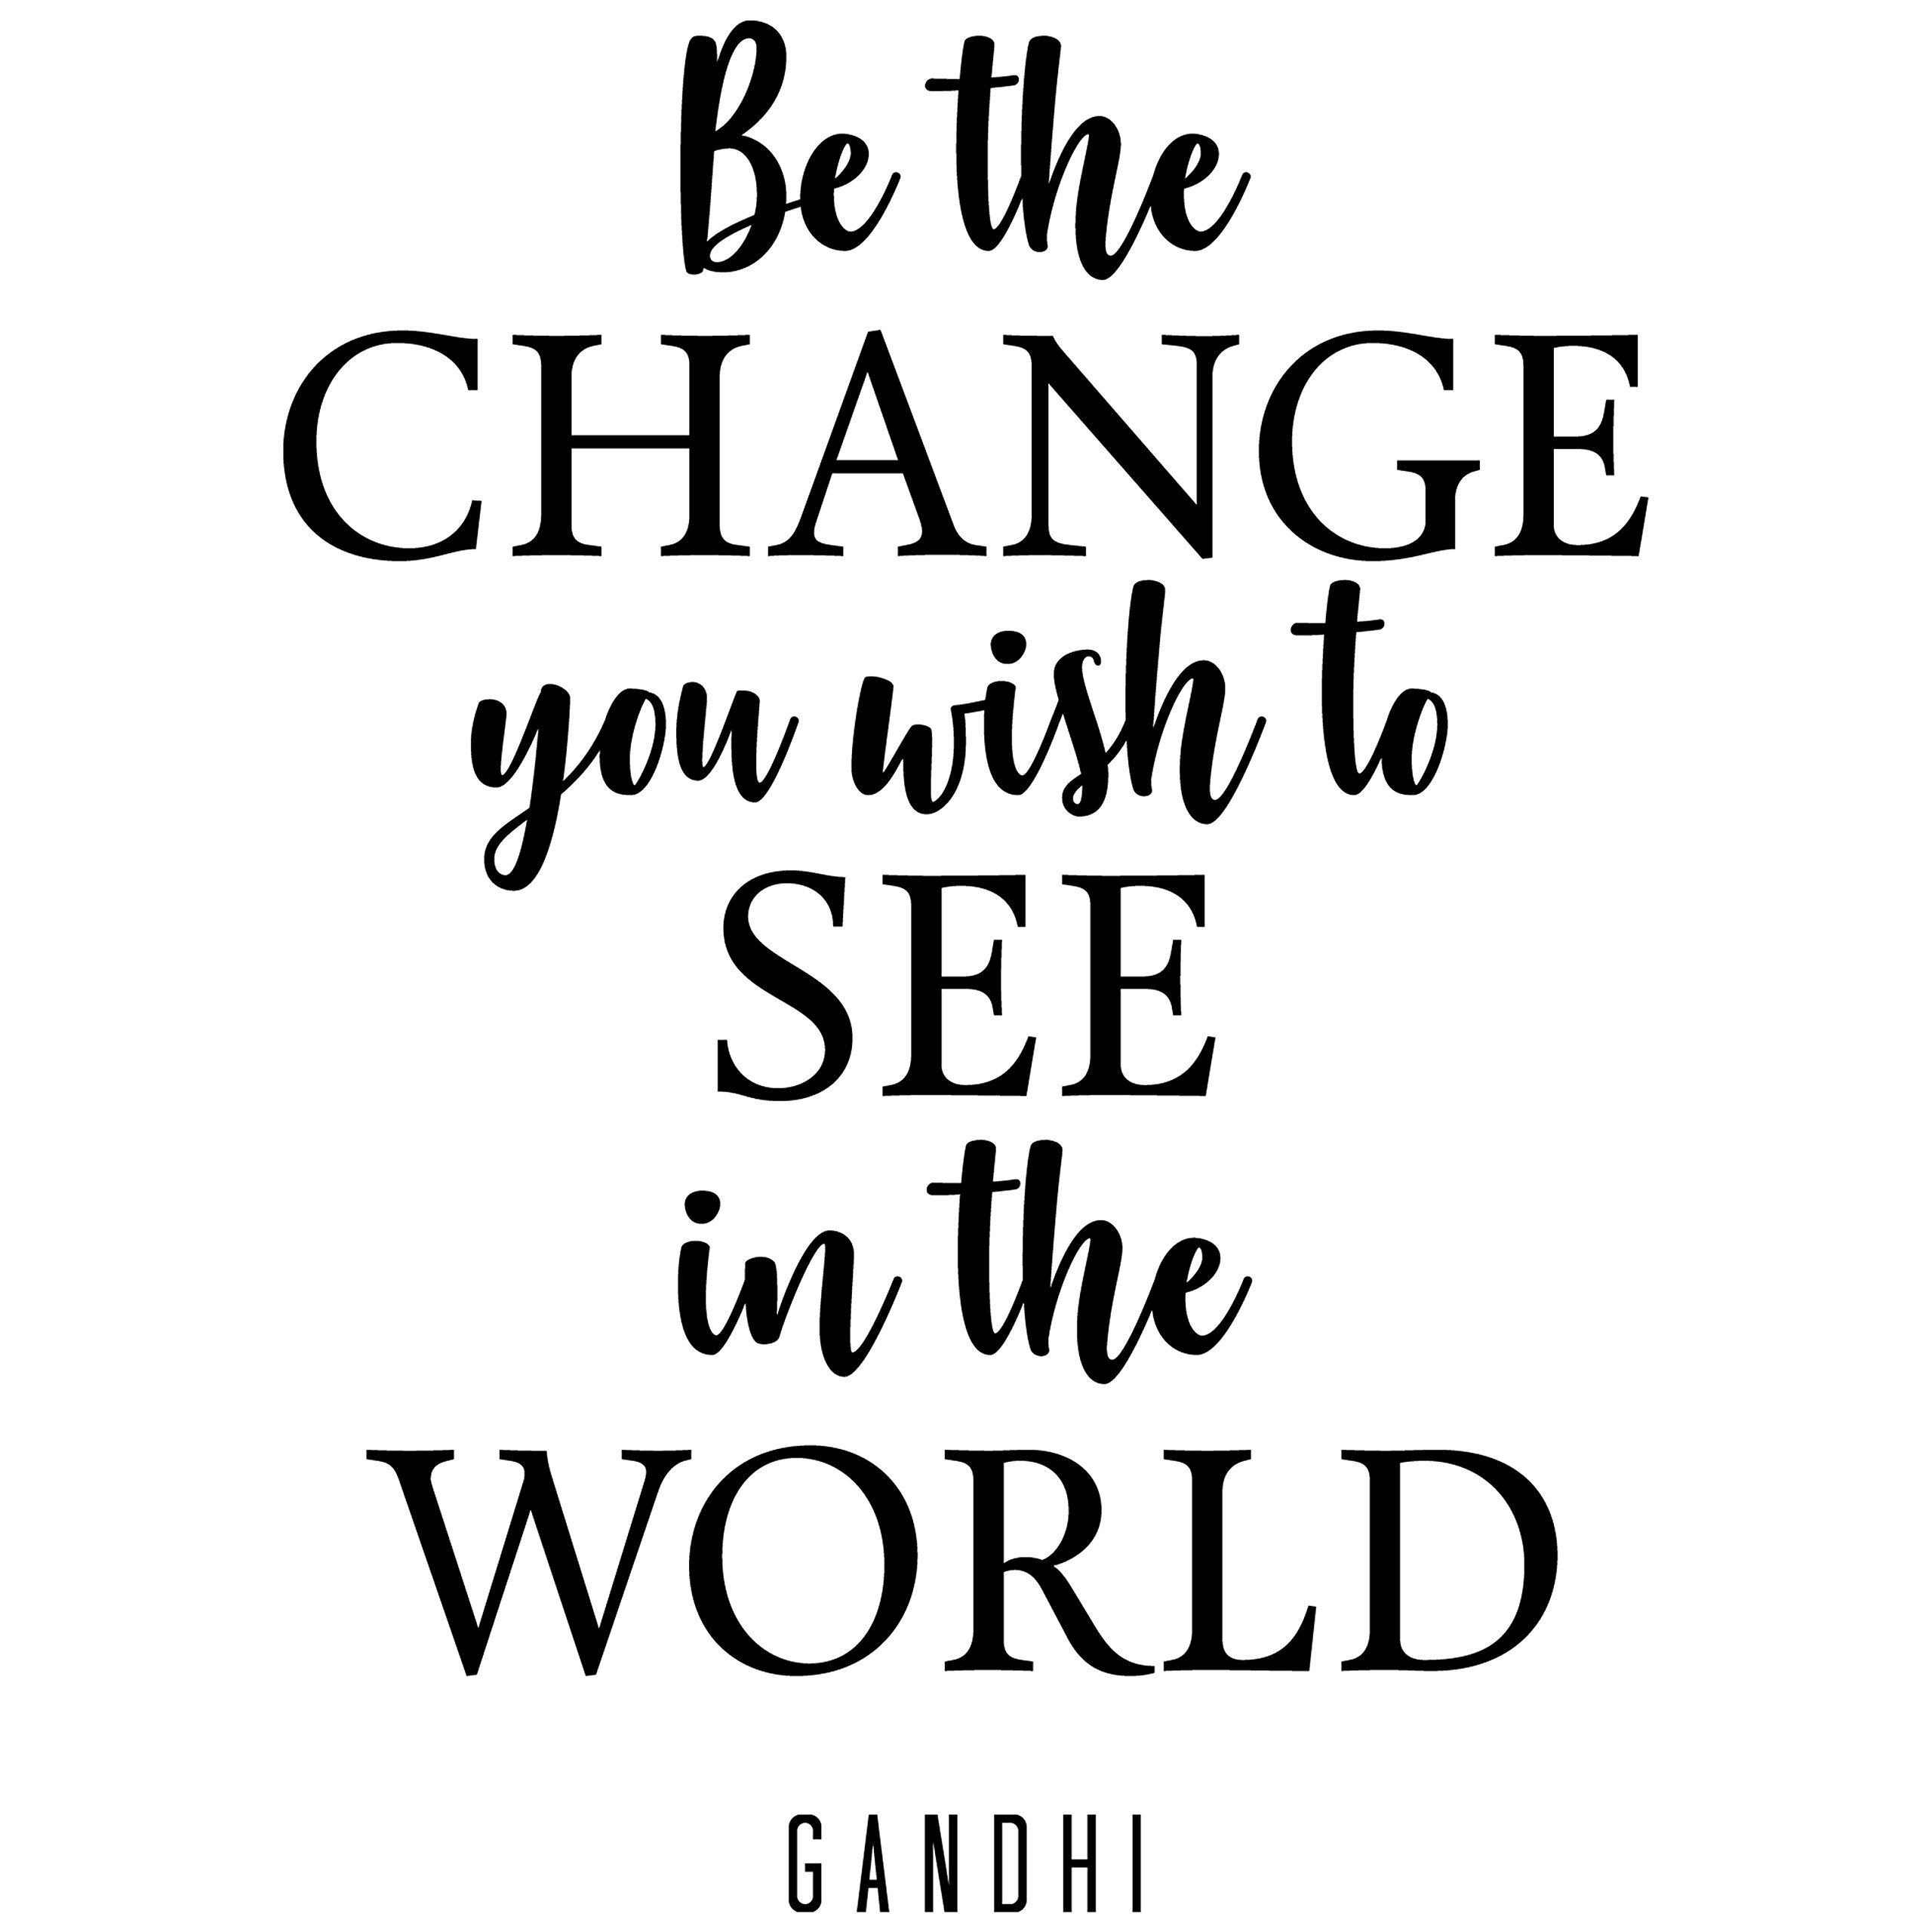 Gandhi motivational Quote Decal inspiring vinyl Wall Art Sticker Be the change